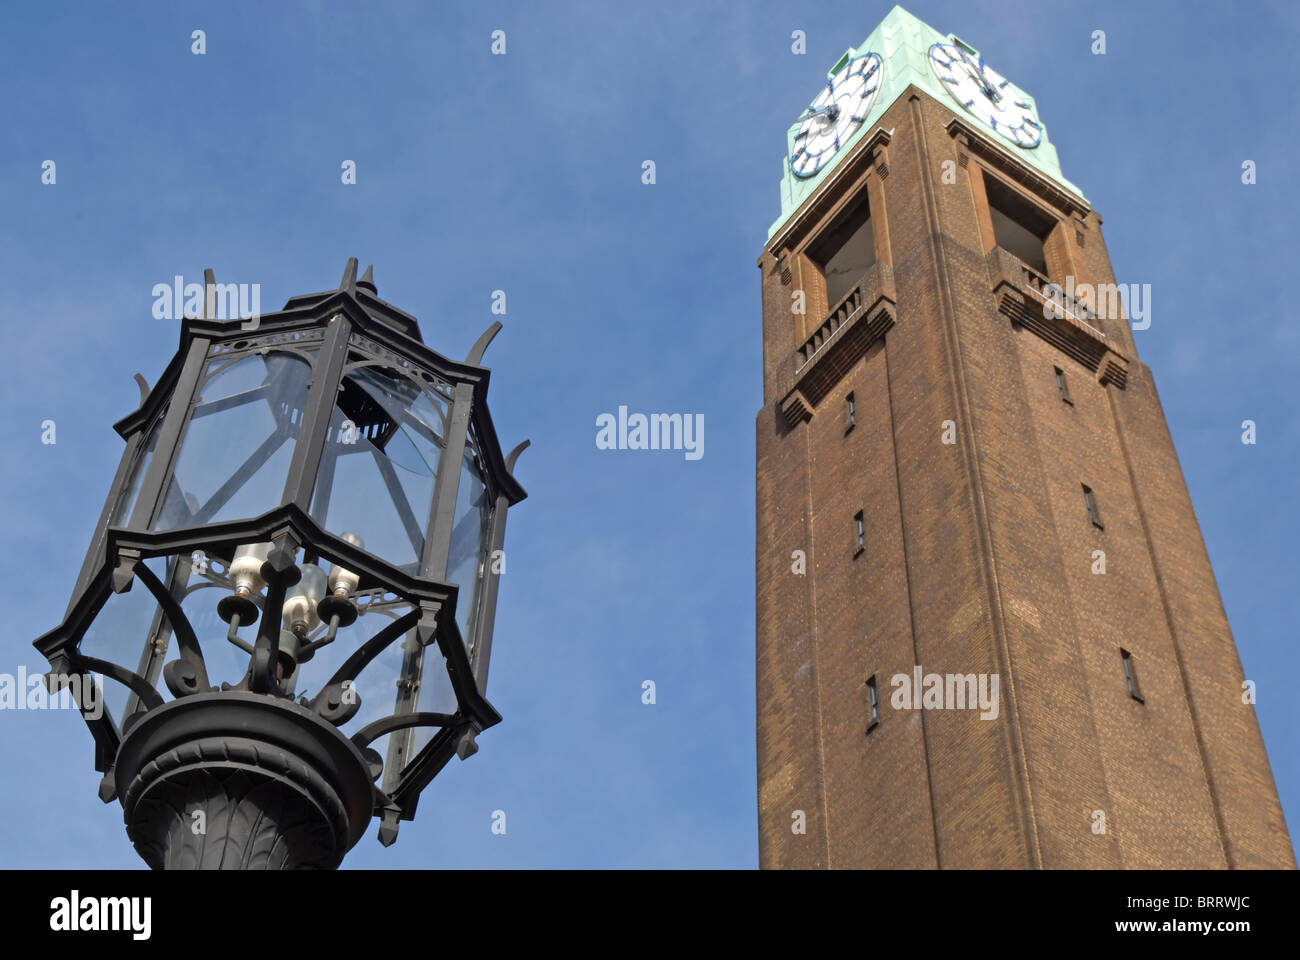 decorative wrought iron lamp and gillette tower, features of the 1937 former gillette factory, west london, england - Stock Image